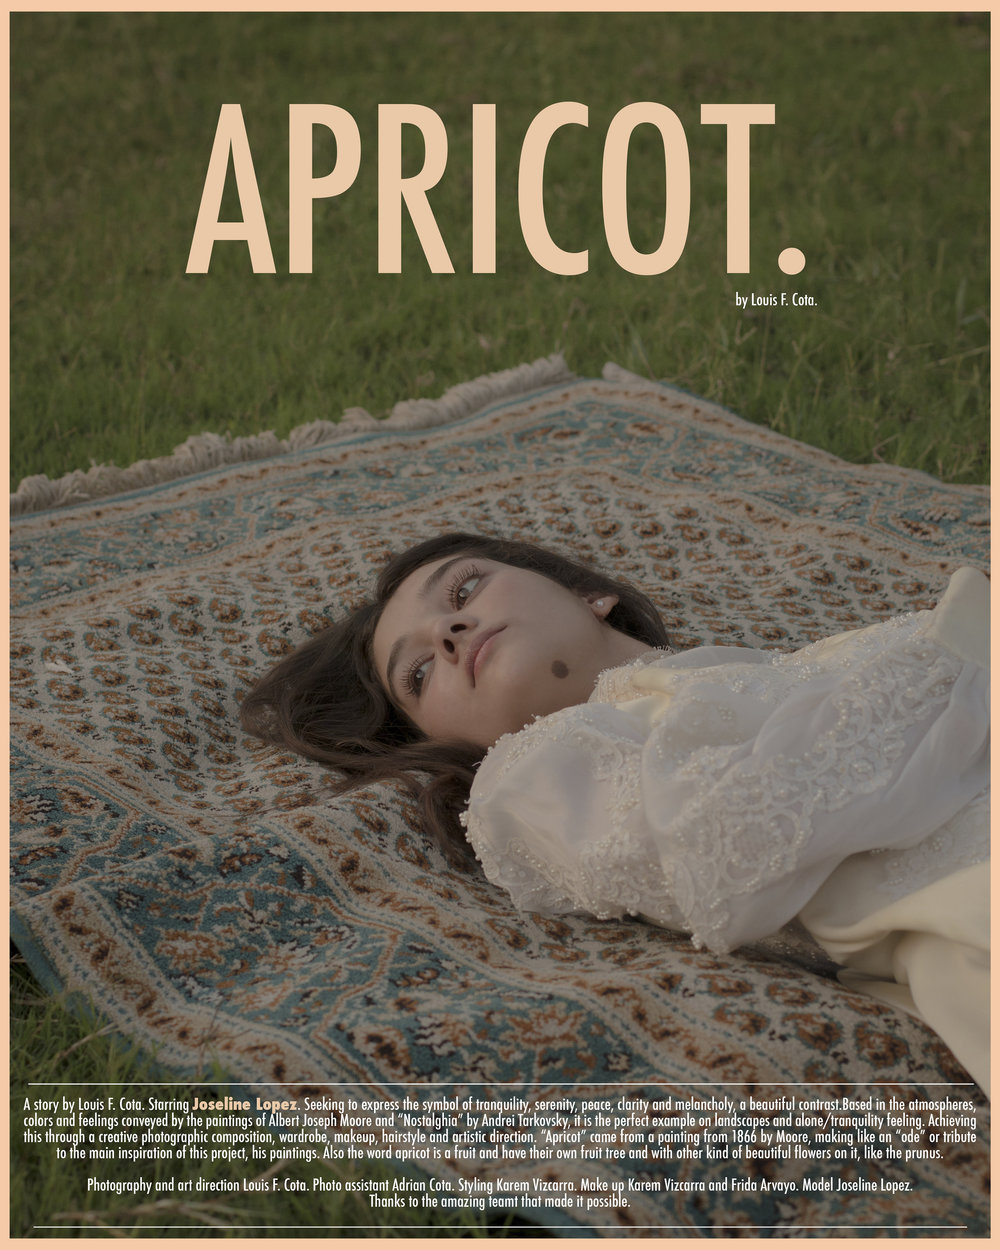 Cover - Poster - Apricot by LouisFCota.jpg